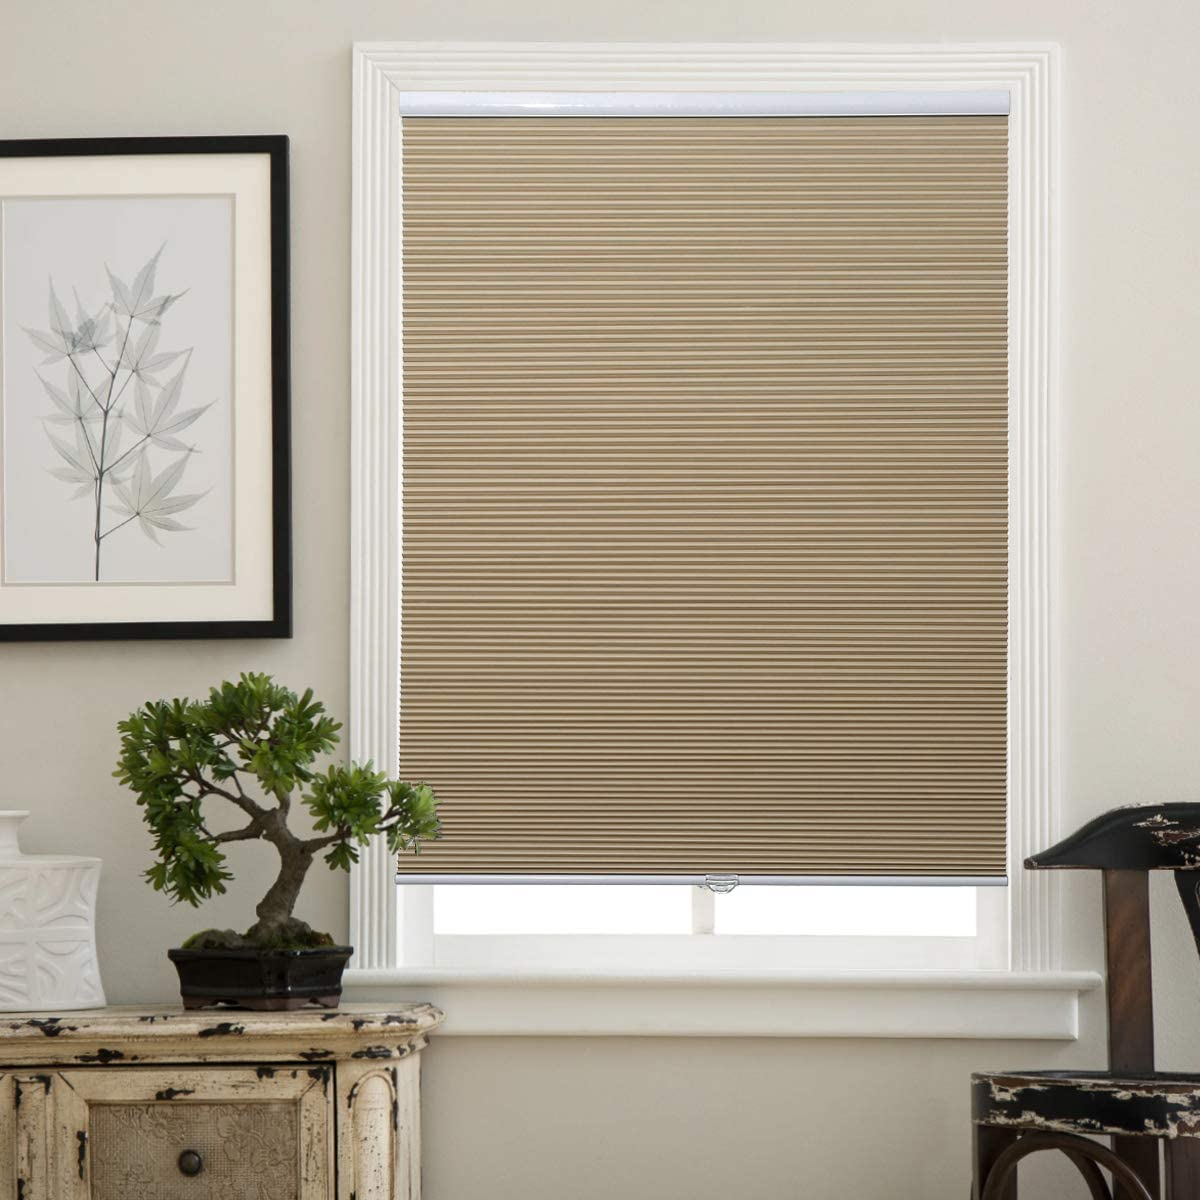 Matinss Cellular Shades Cordless Window Blinds Honeycomb Shades for Home and Windows Bedroom, Blackout Shades, Beige-White, 23x64